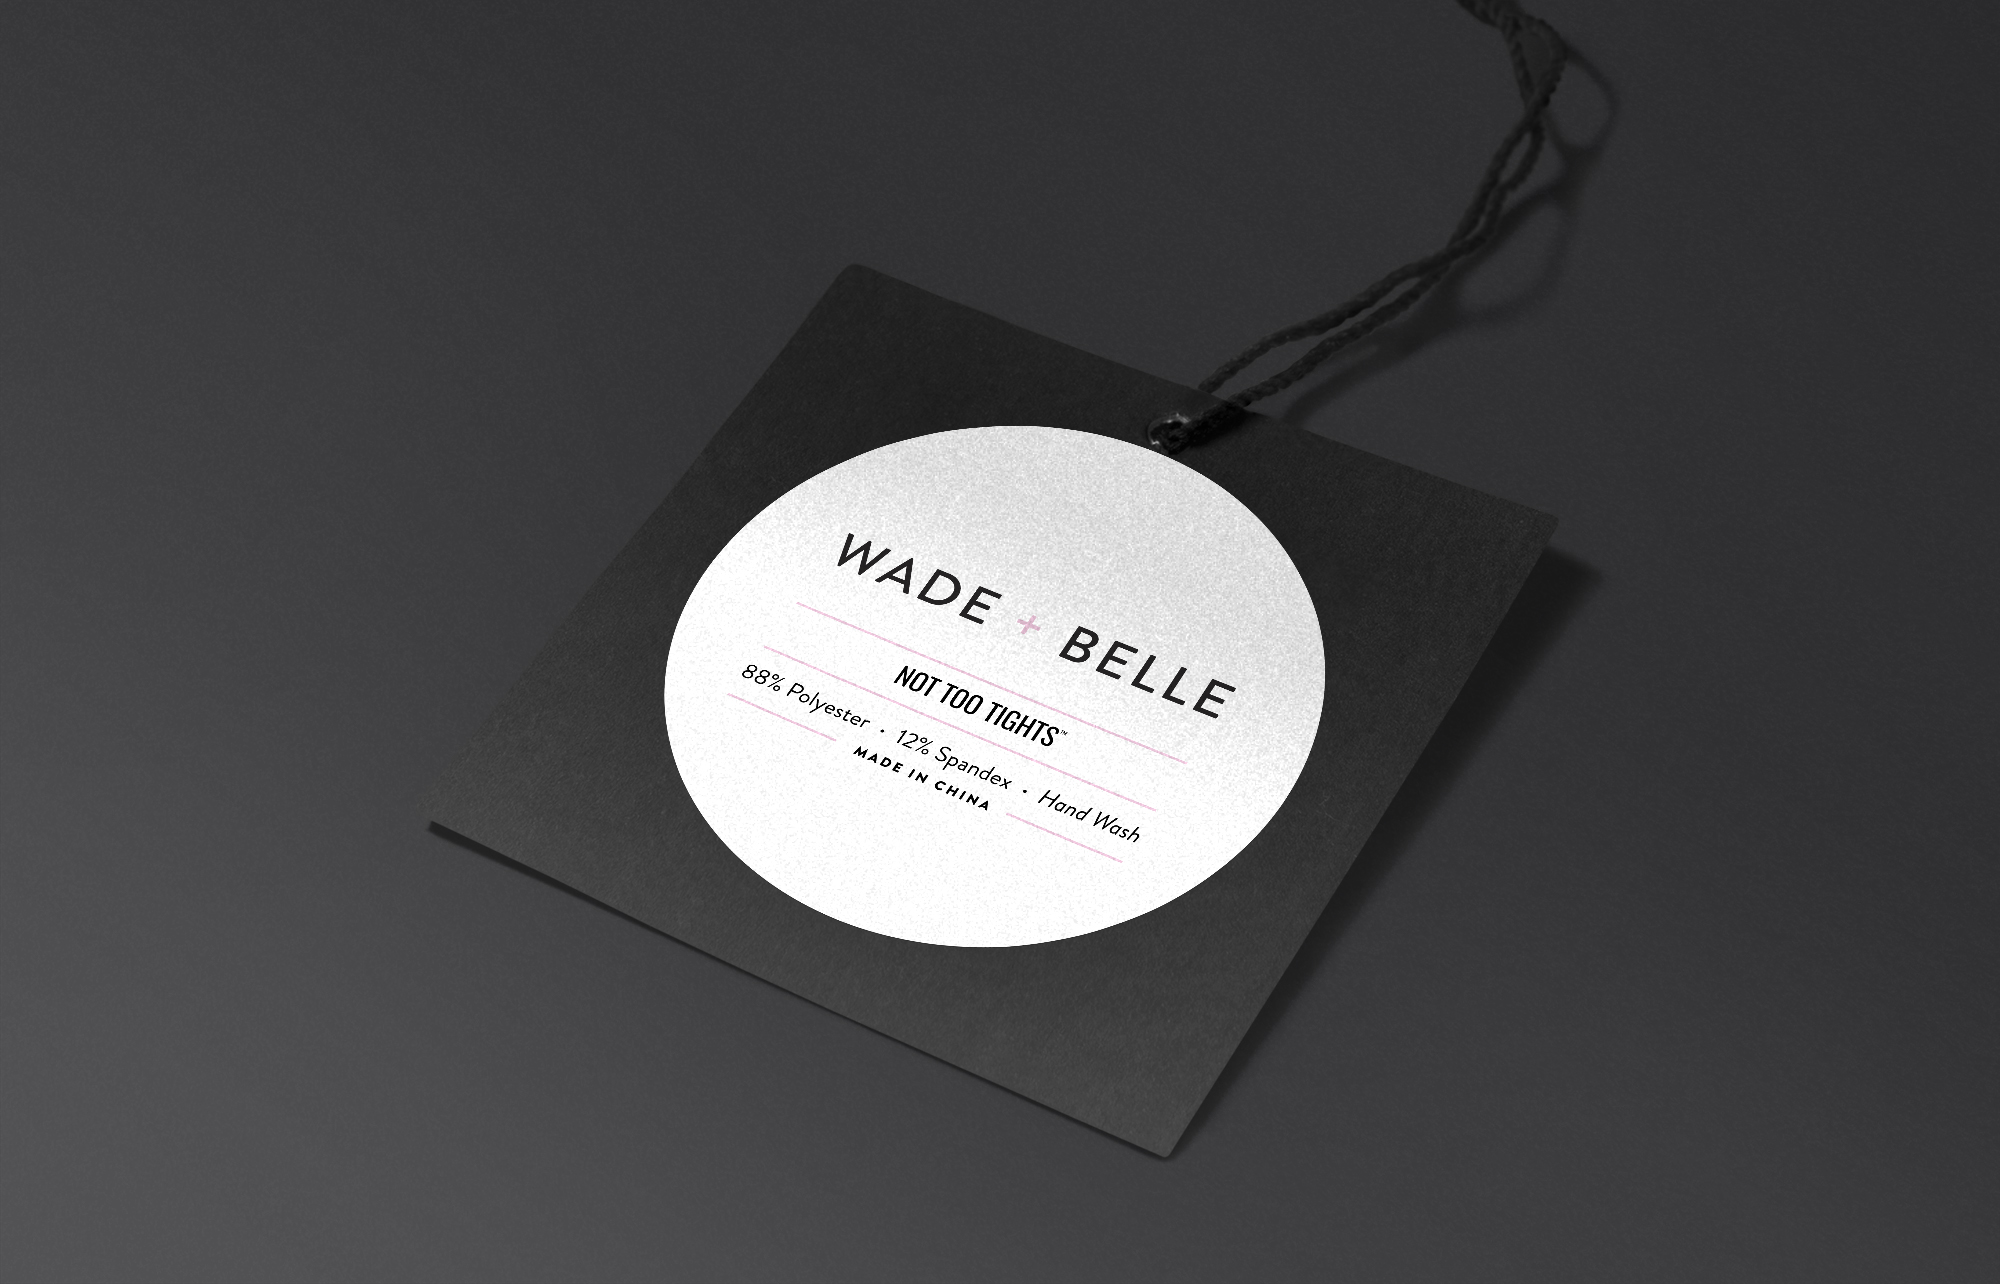 Wade and Belle label.jpg